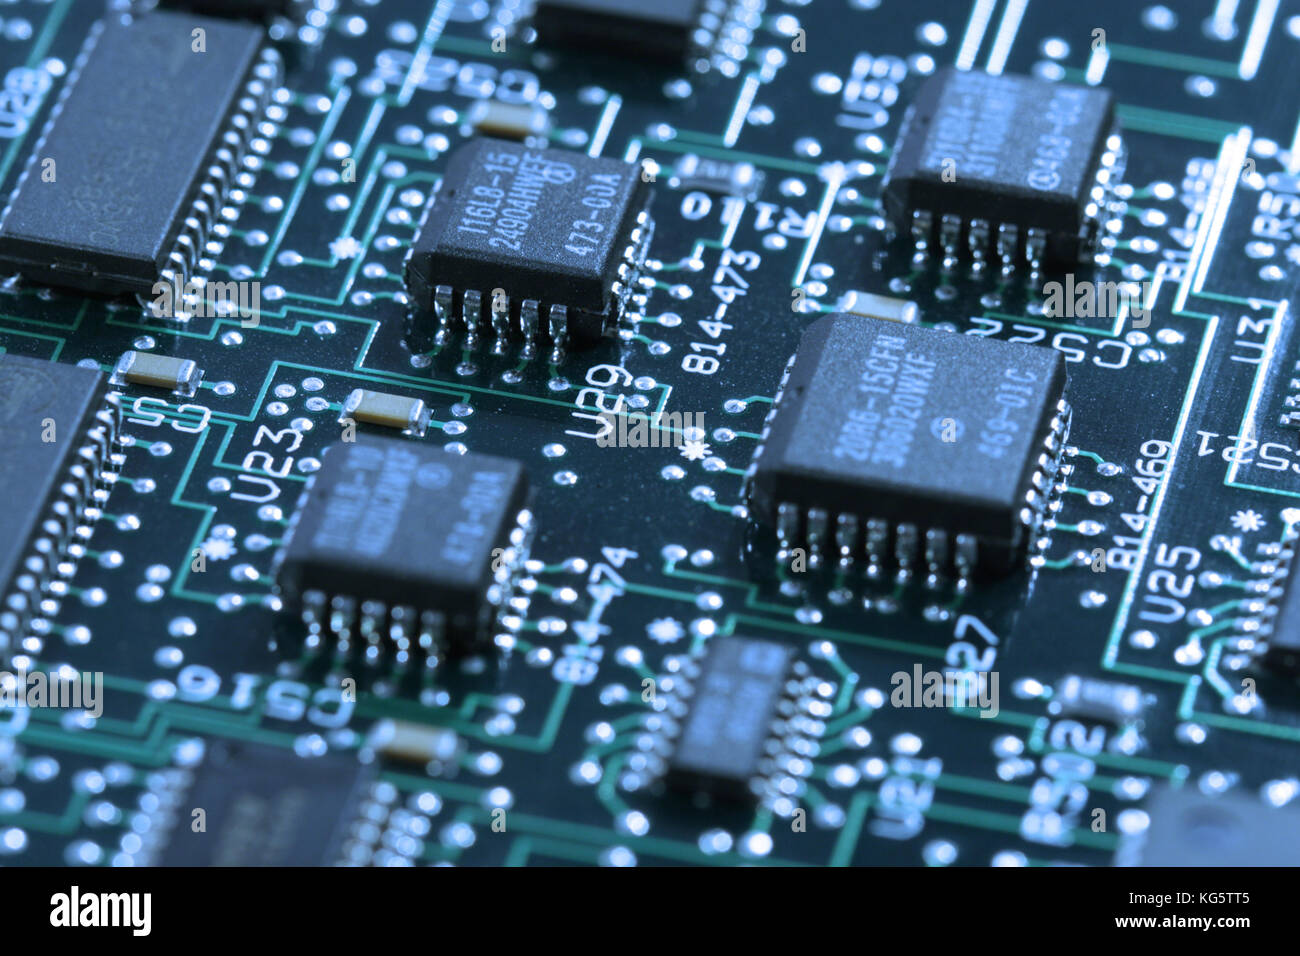 computer mainboard - dual inline modules, surface mounted devices with green, red, blue light - macro shot - Stock Image